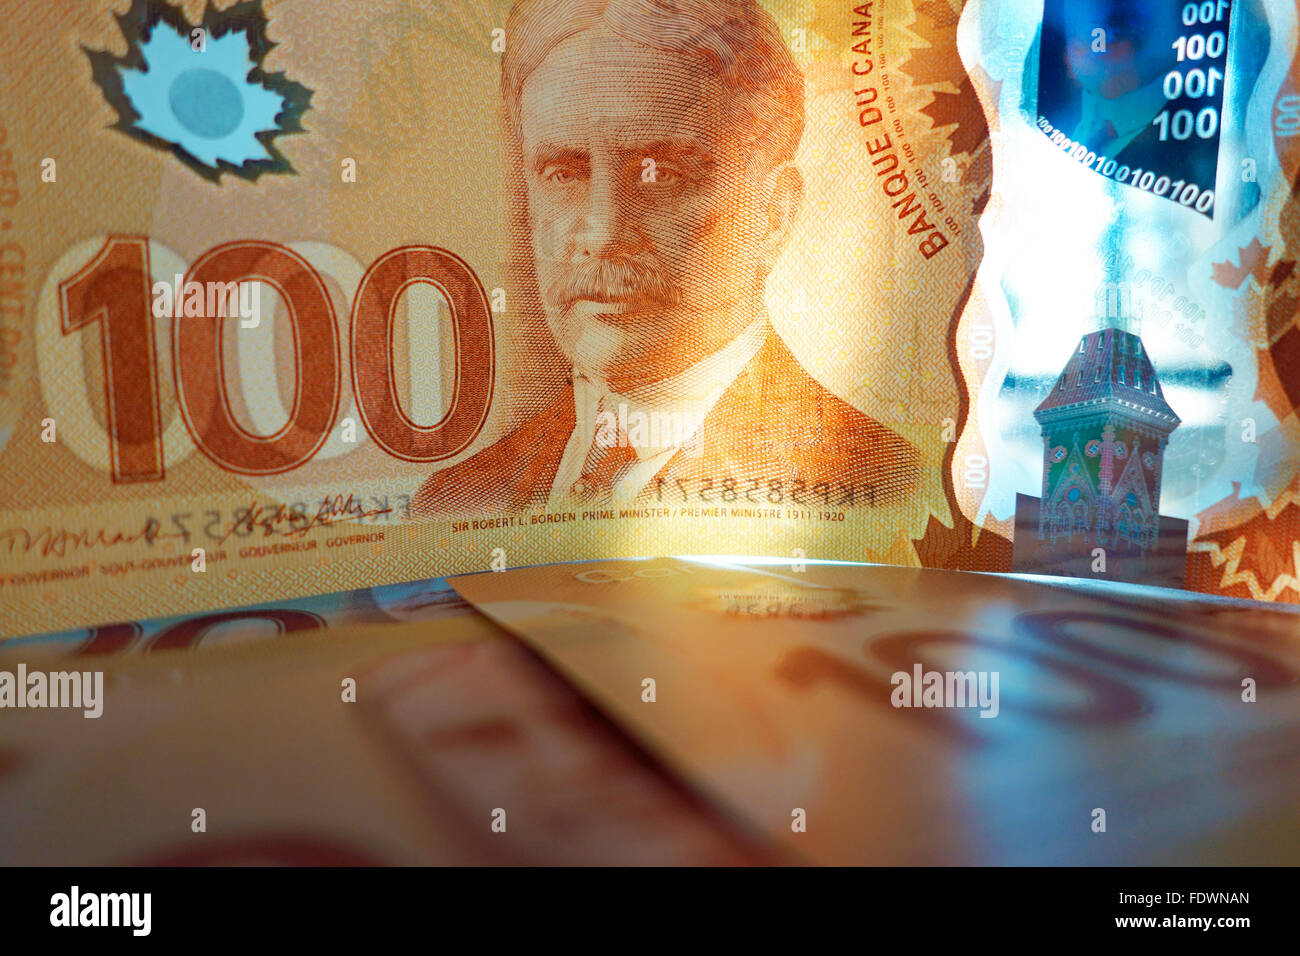 Canadian 100 one hundred dollar bill paper money - Stock Image